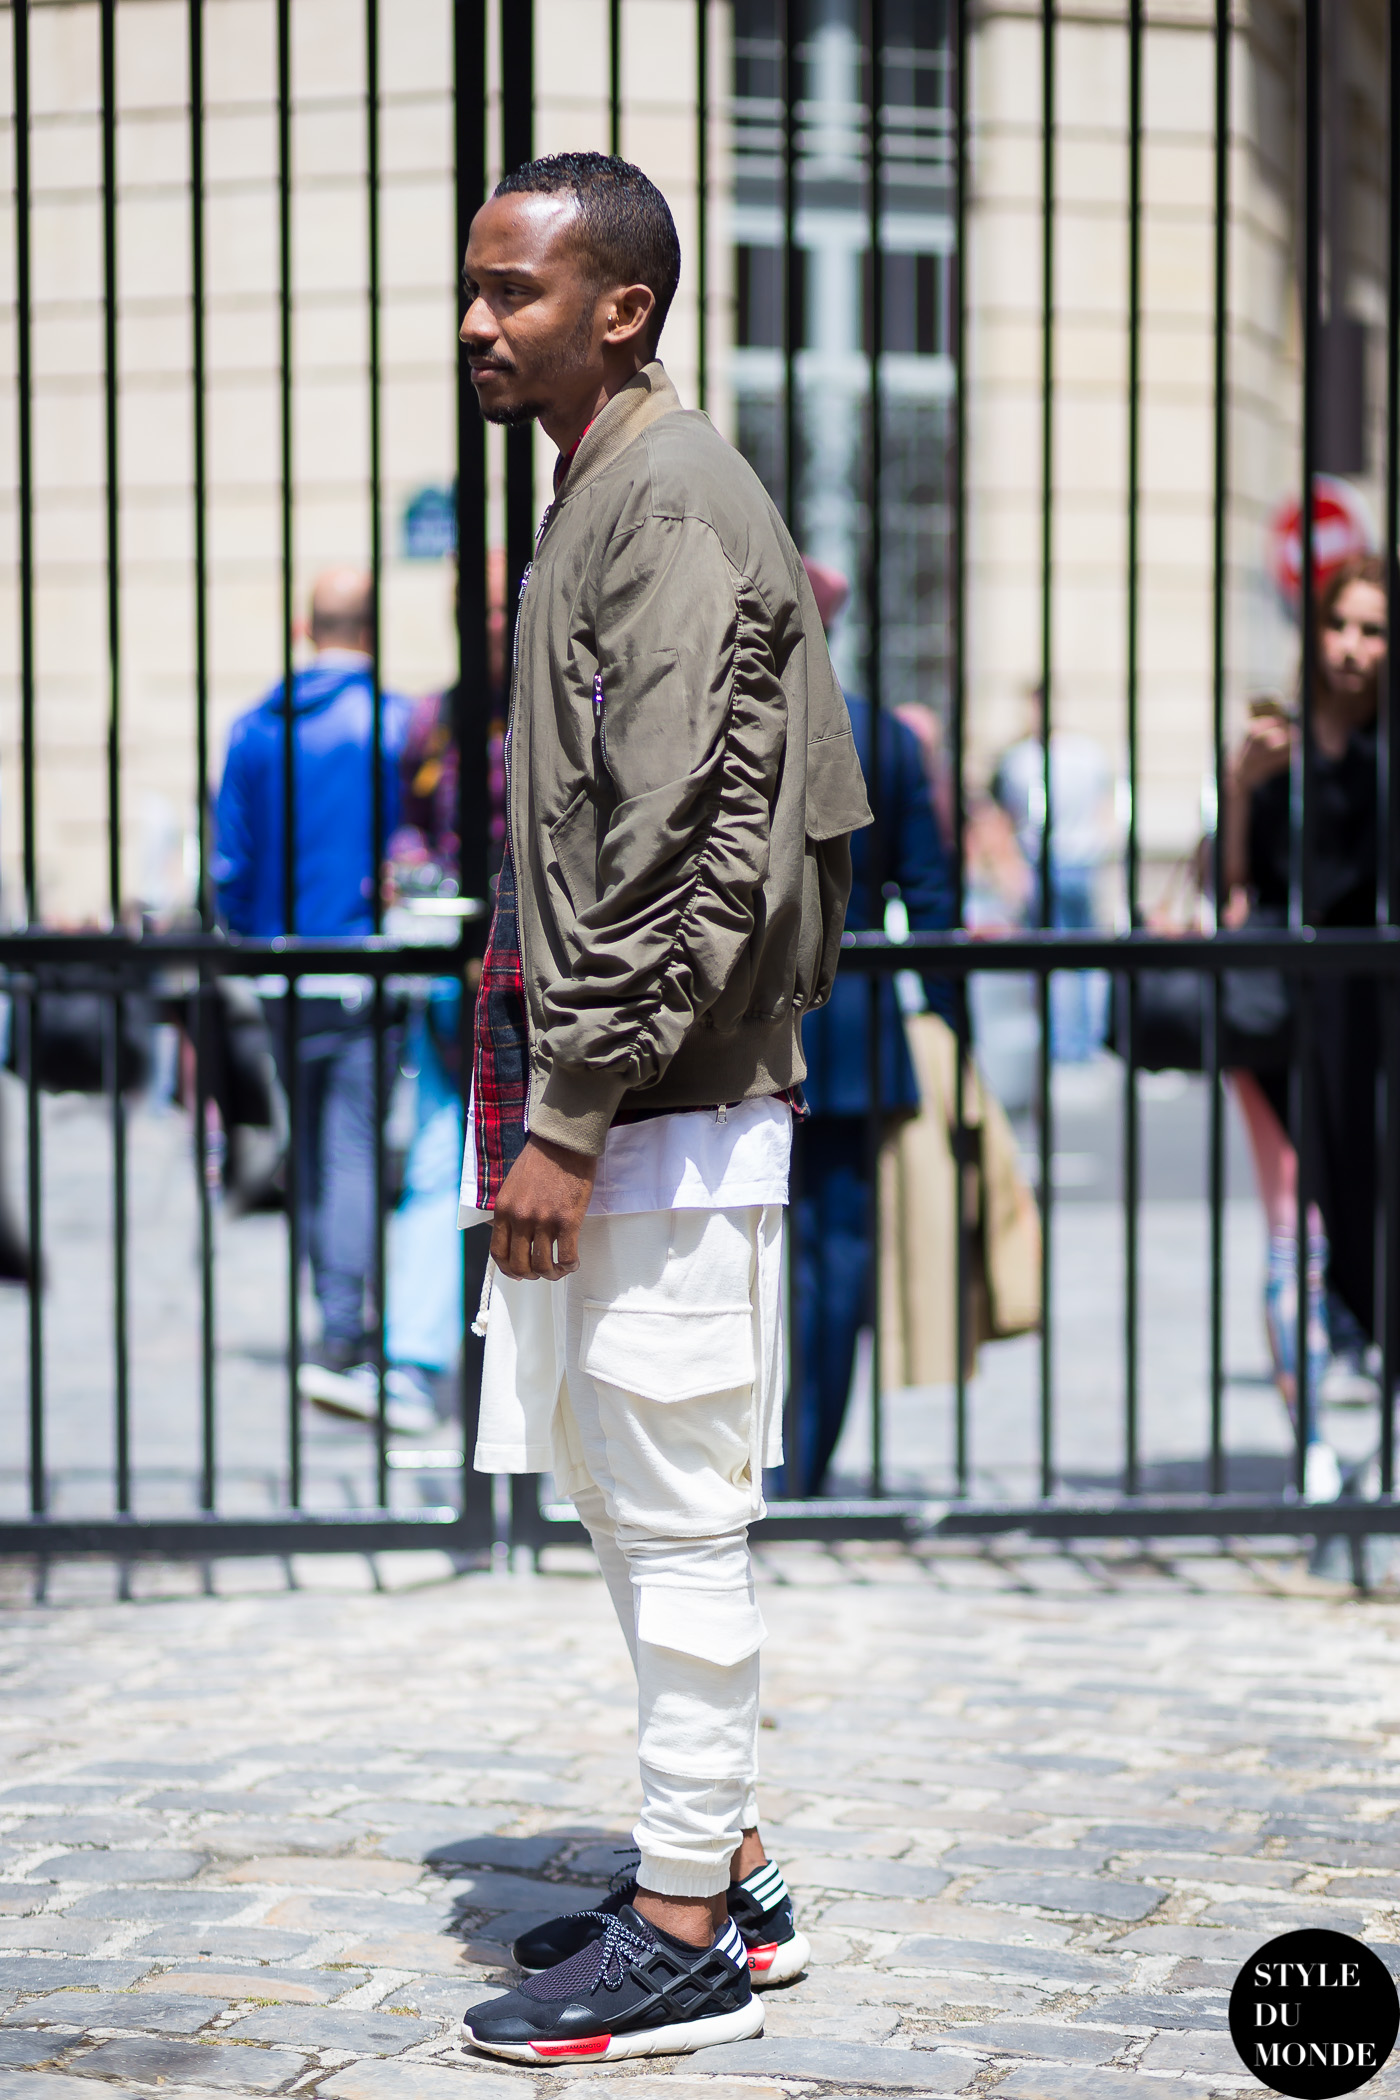 Before Y-3 Street Style Street Fashion Streetsnaps by STYLEDUMONDE Street Style Fashion Blog